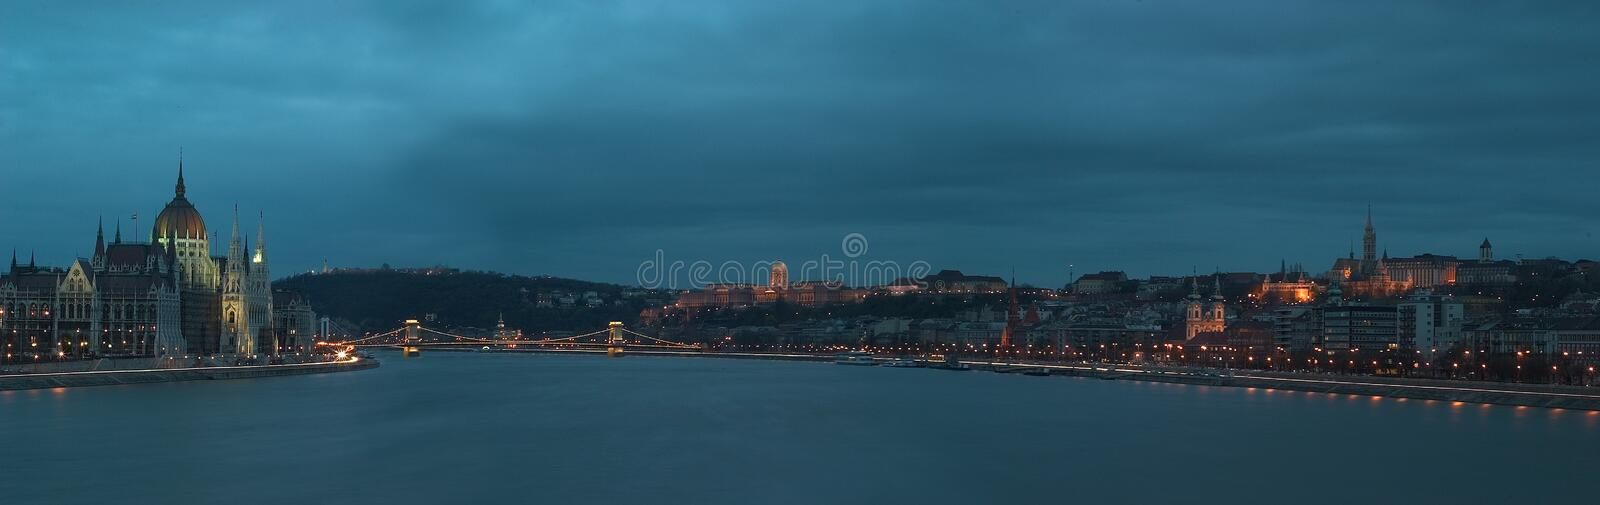 Panorama of Budapest. Budapest, the capital of Hungary stands on both sides of the river Danube royalty free stock photography